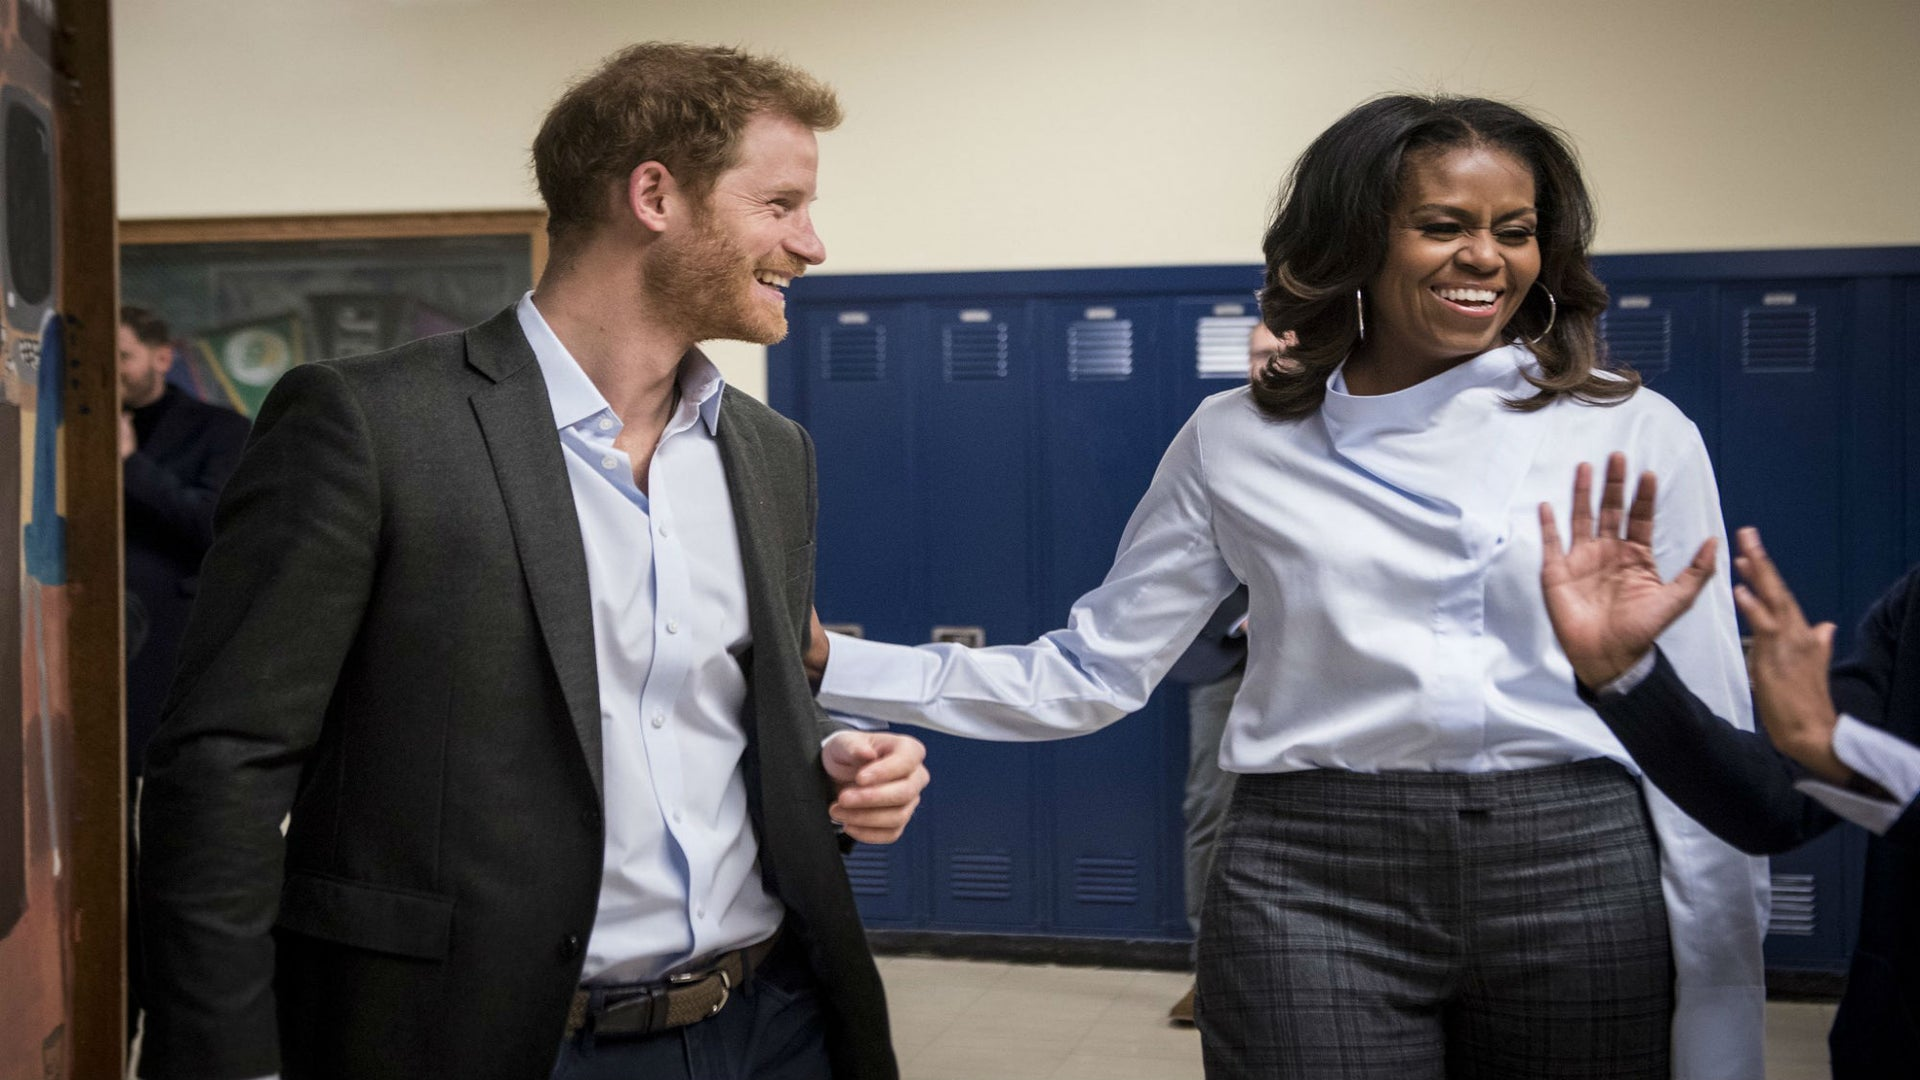 Prince Harry And Michelle Obama Made These Chicago High School Students' Day